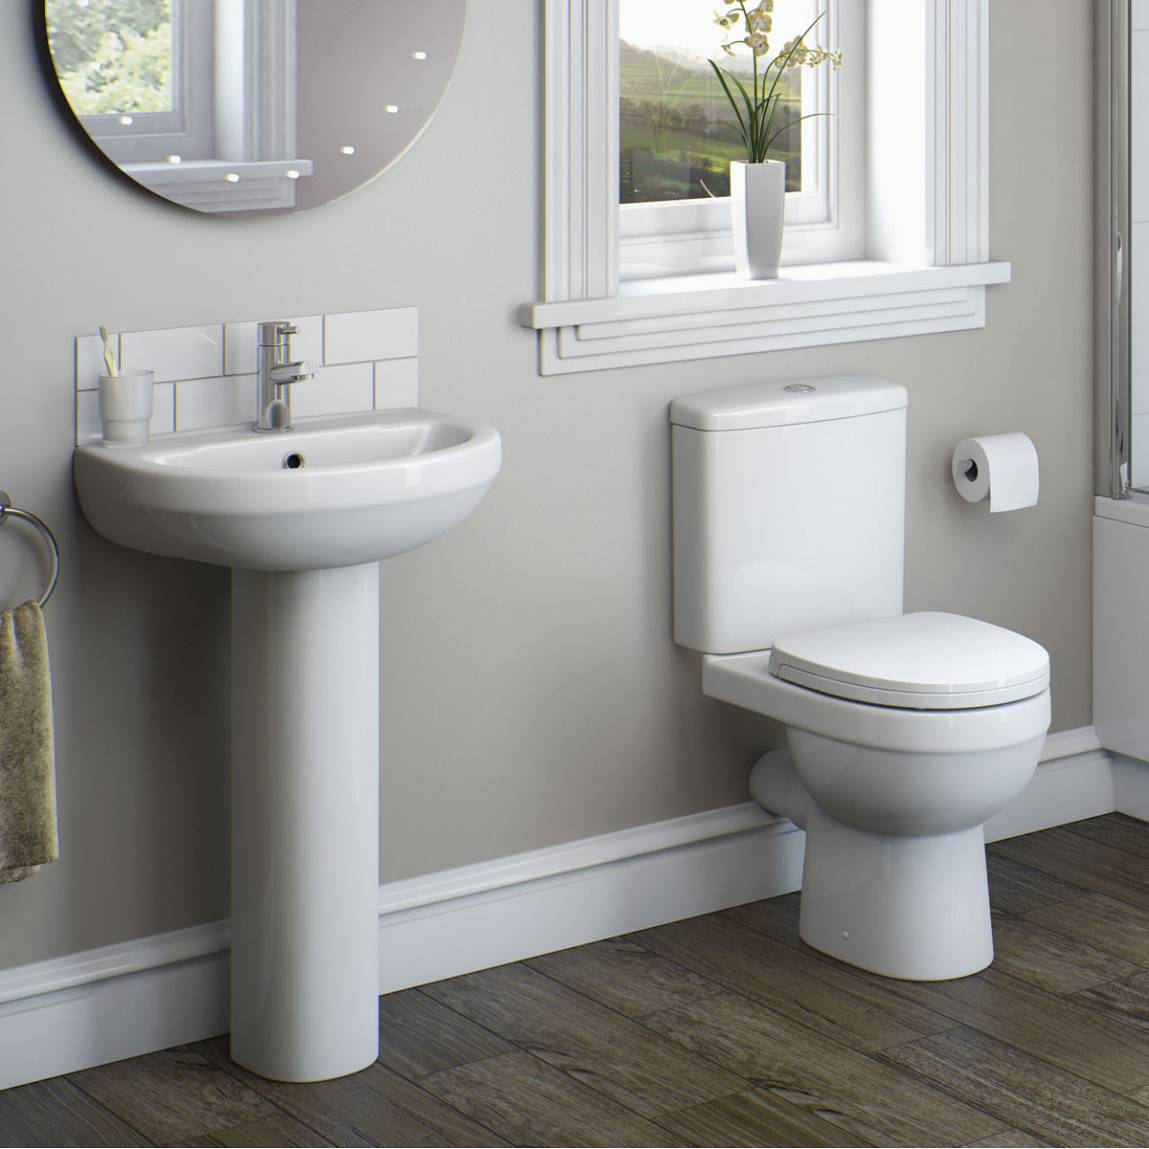 How Much To Have A Bathroom Fitted: Bathroom Products For Small Spaces